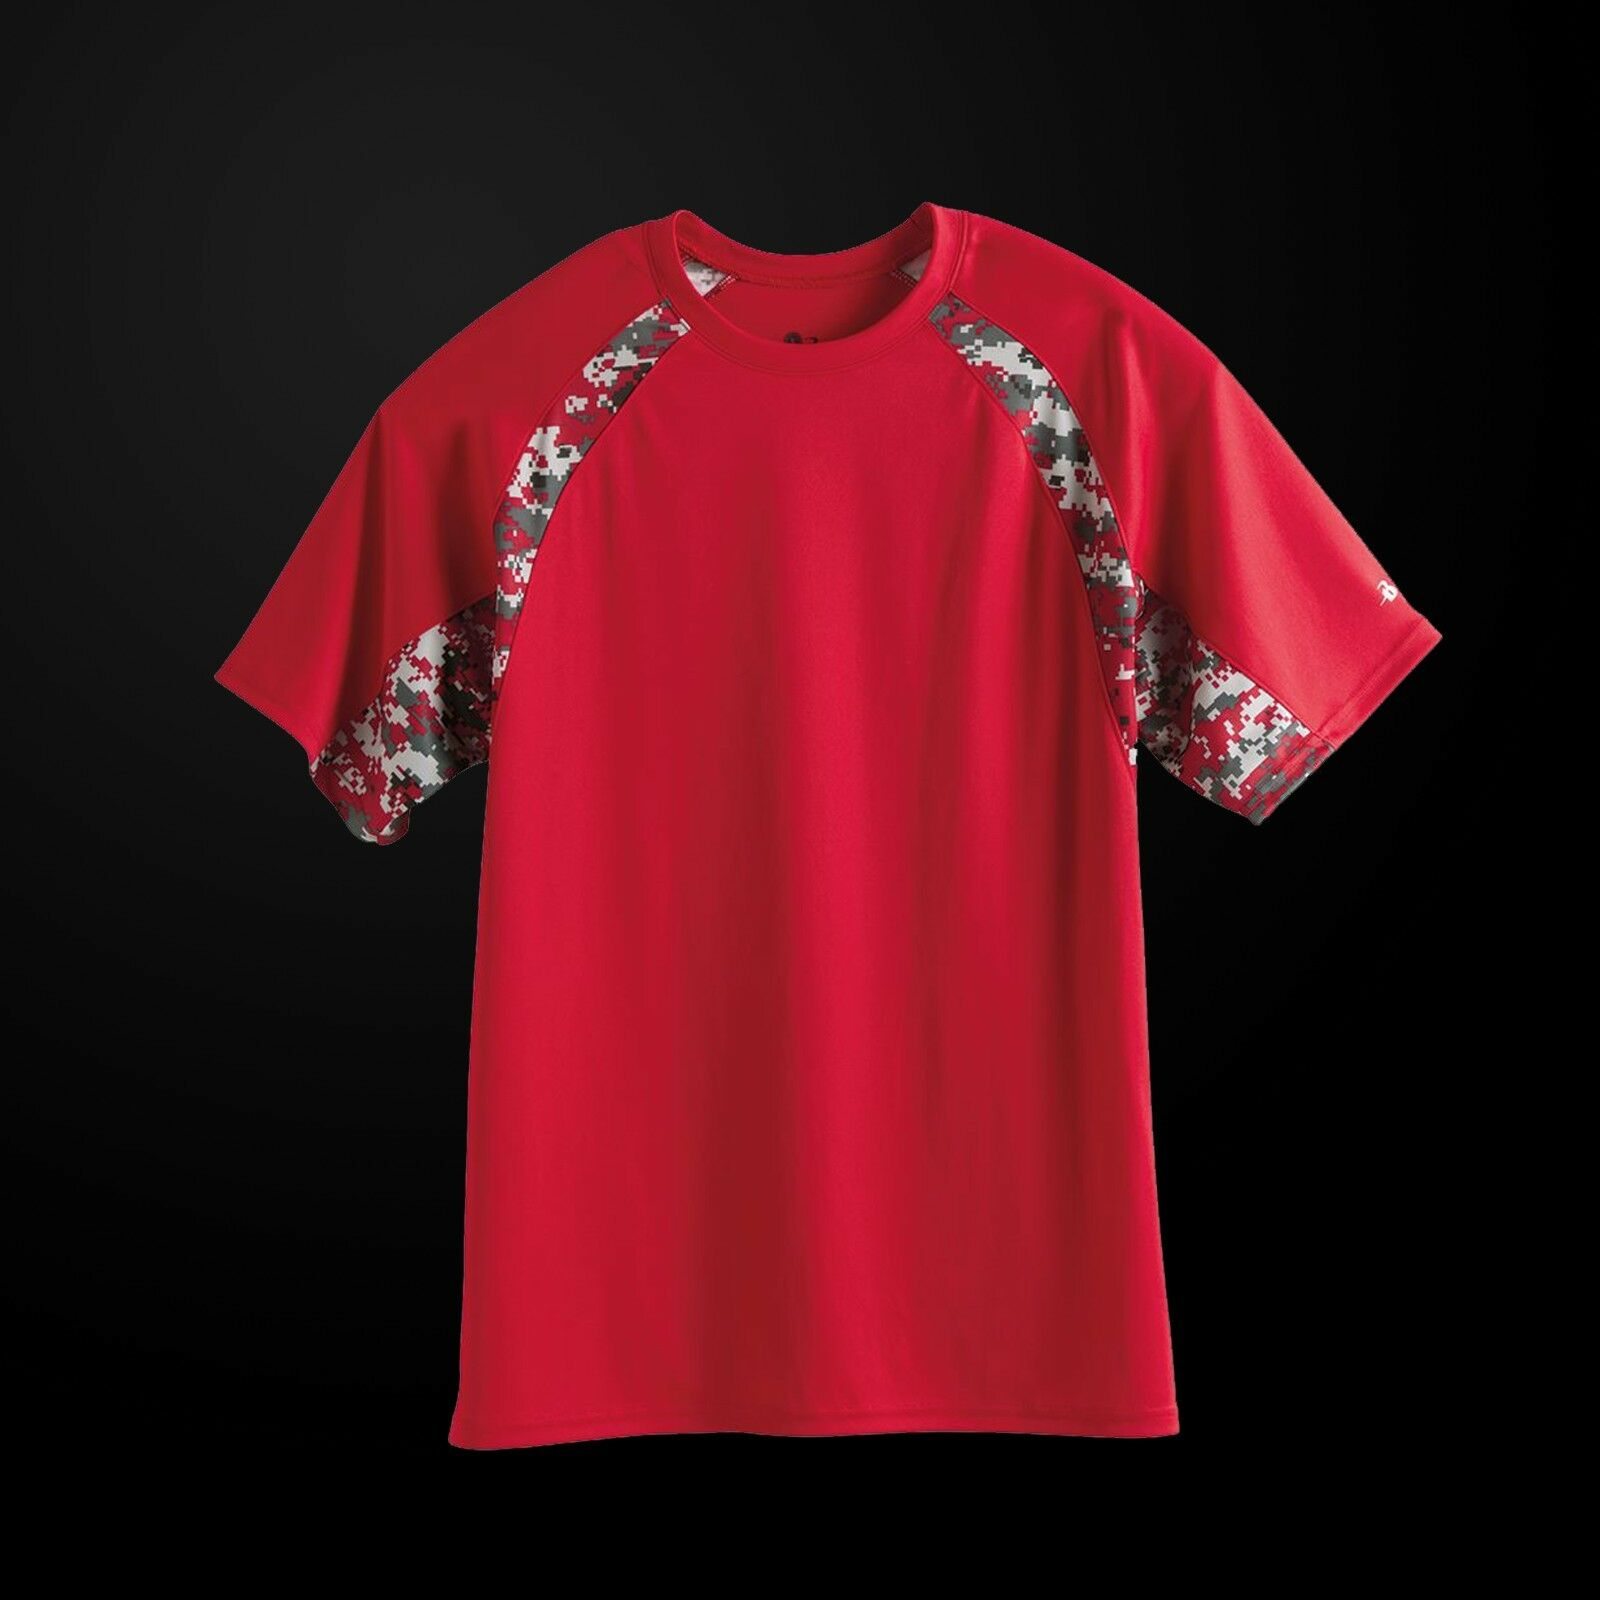 badger digital camo hook t shirt 4140 men 39 s 100 polyester tee ebay. Black Bedroom Furniture Sets. Home Design Ideas